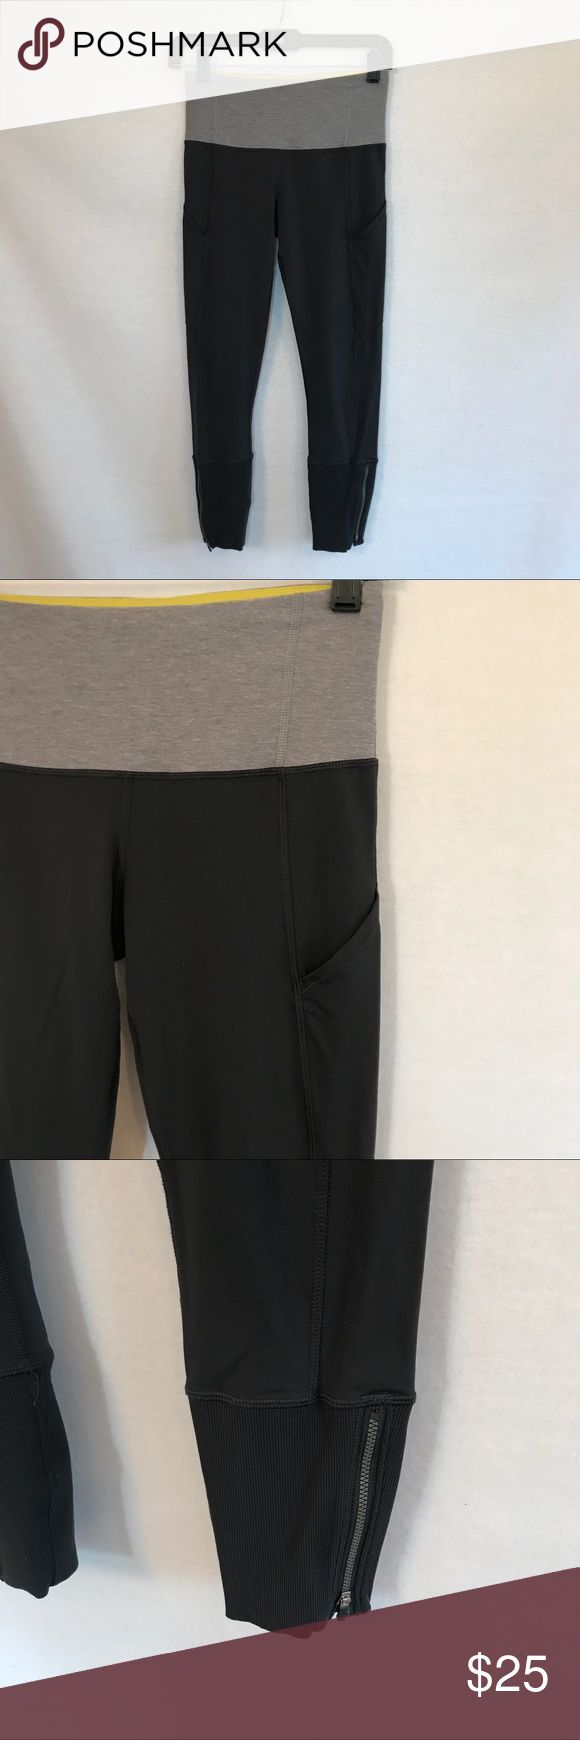 """Lululemon size four active crops gray zip bottom Great active leggings from Lululemon. Dark and light gray exterior with pop of bright yellow on the inside. Zipper at the bottom and thin open pockets on the side. Diagonal zip pocket on the back. Leggings still fully functional - decorative seaming on the back has pulled out. See photos. Size located inside yellow waistband pocket.   waist: approx 12.5"""" inseam: approx 24"""" length: approx 32"""" lululemon athletica Pants Leggings"""